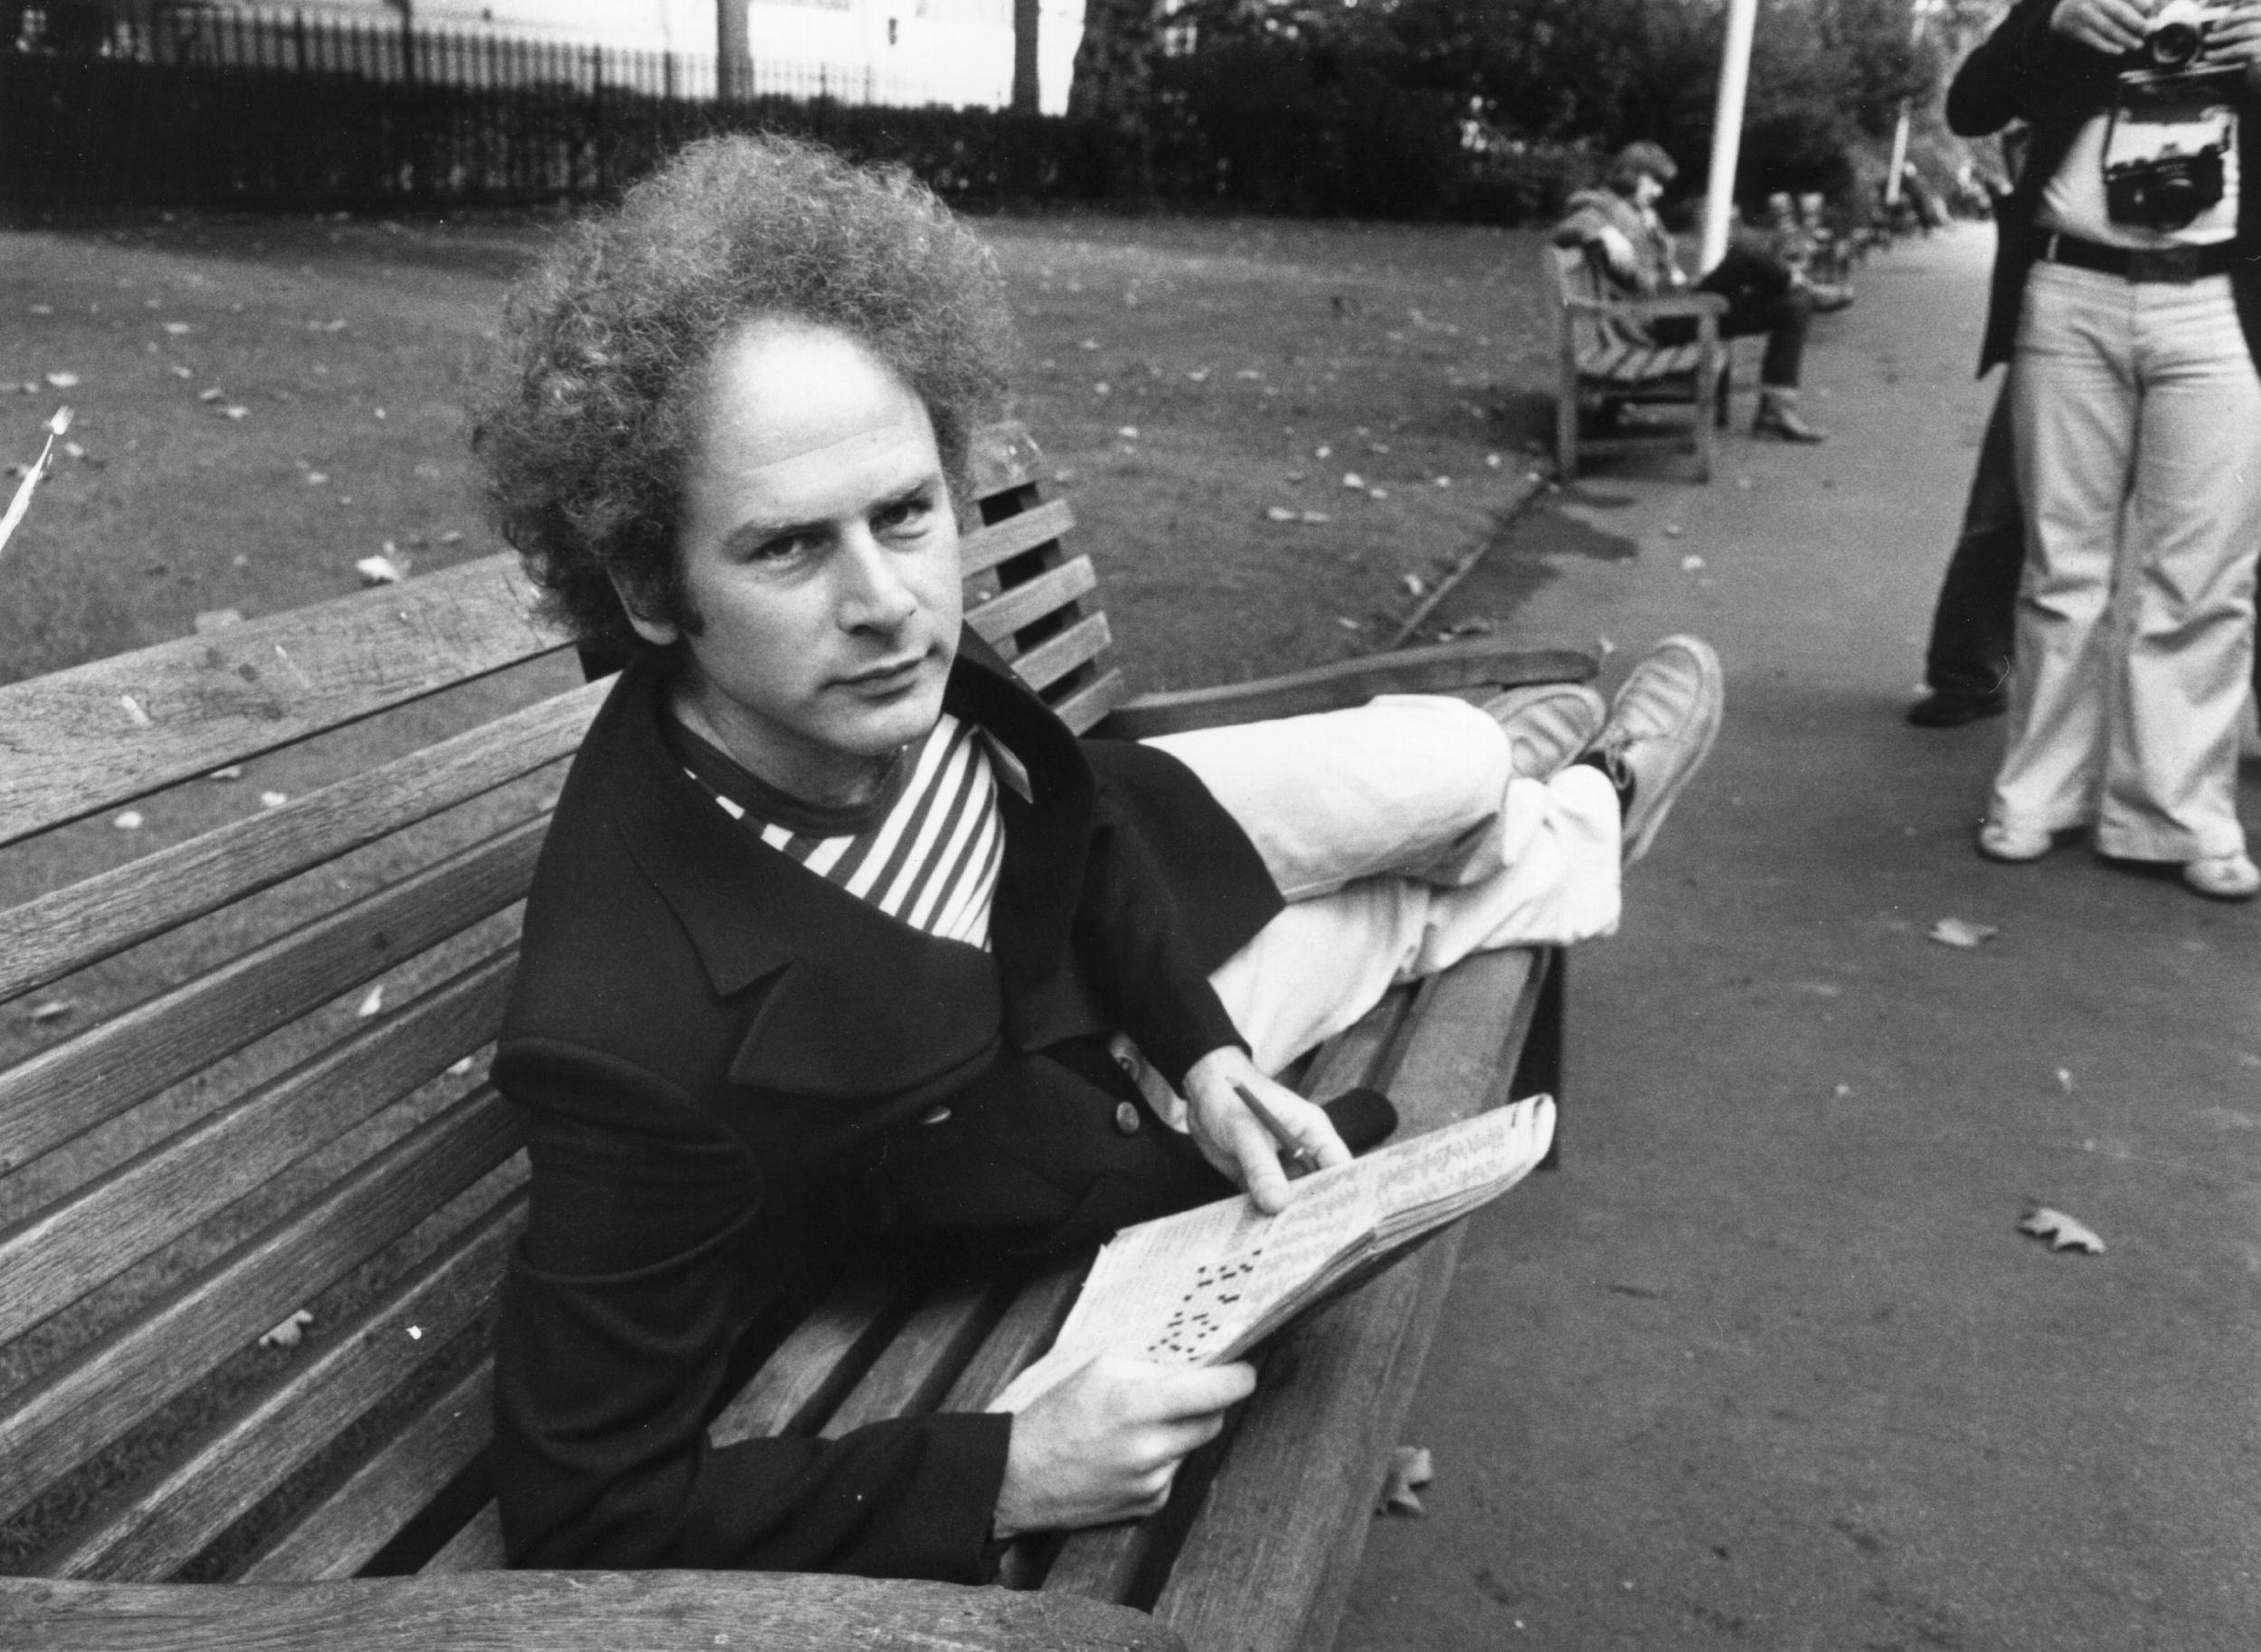 The Book List: A peek at Art Garfunkel's library – from Twain to Freud